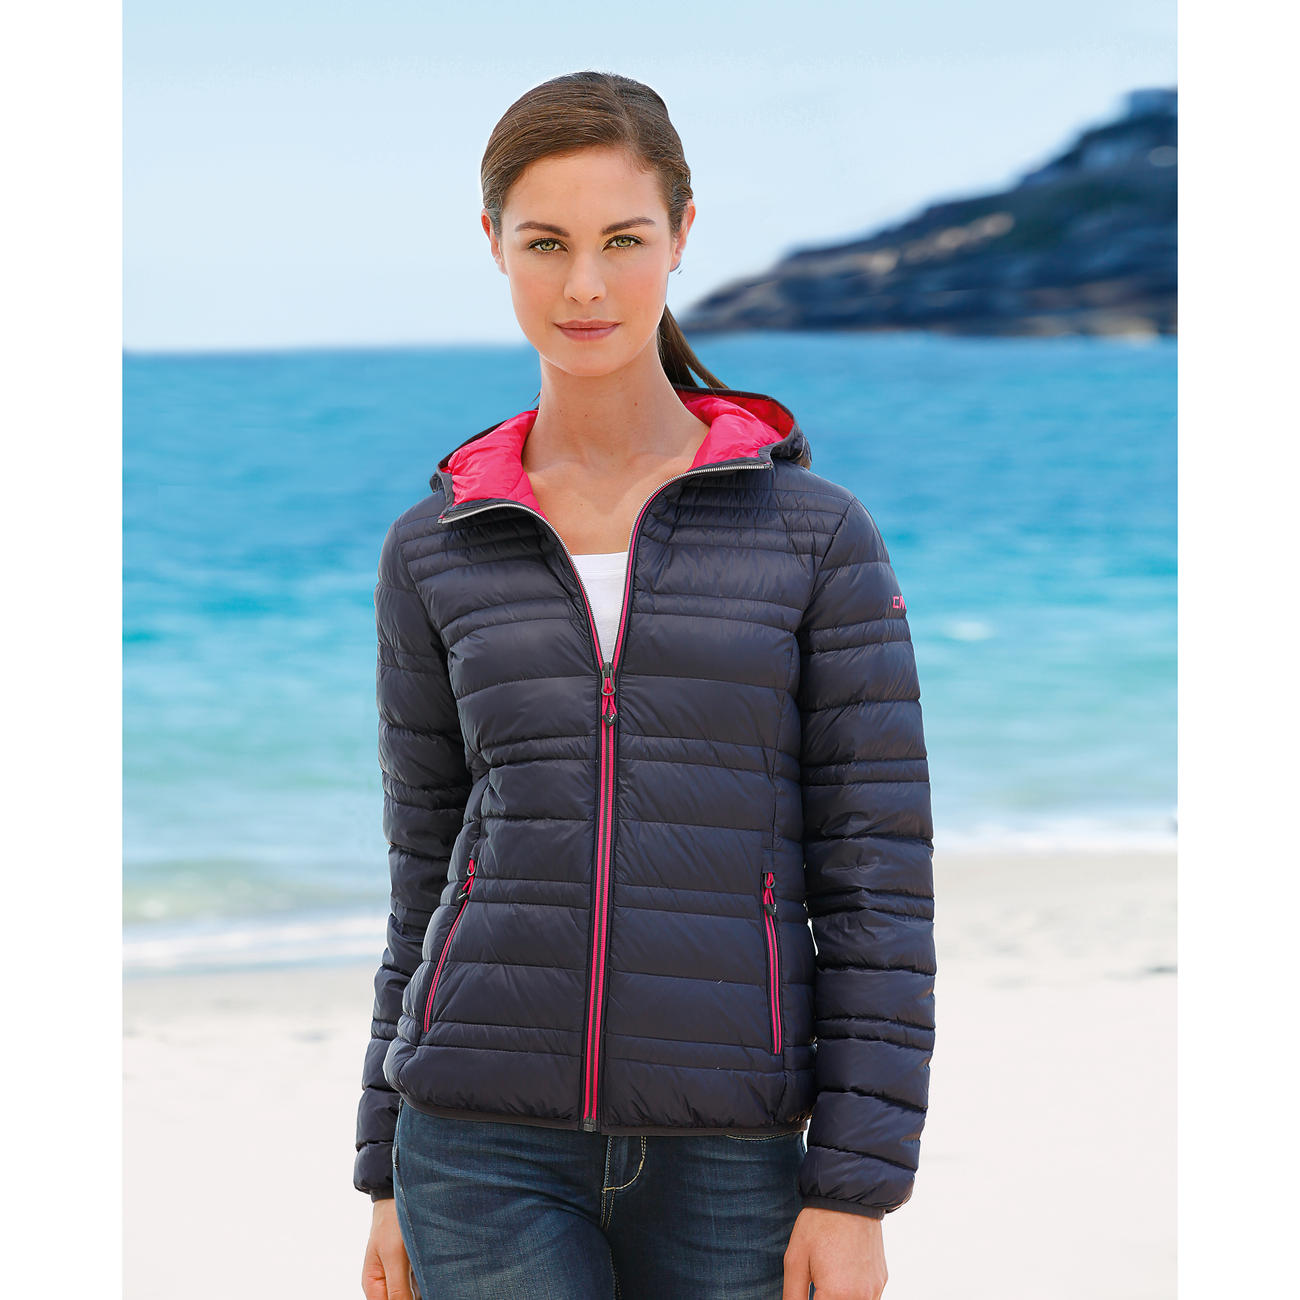 buy cmp campagnolo summer down jacket online. Black Bedroom Furniture Sets. Home Design Ideas